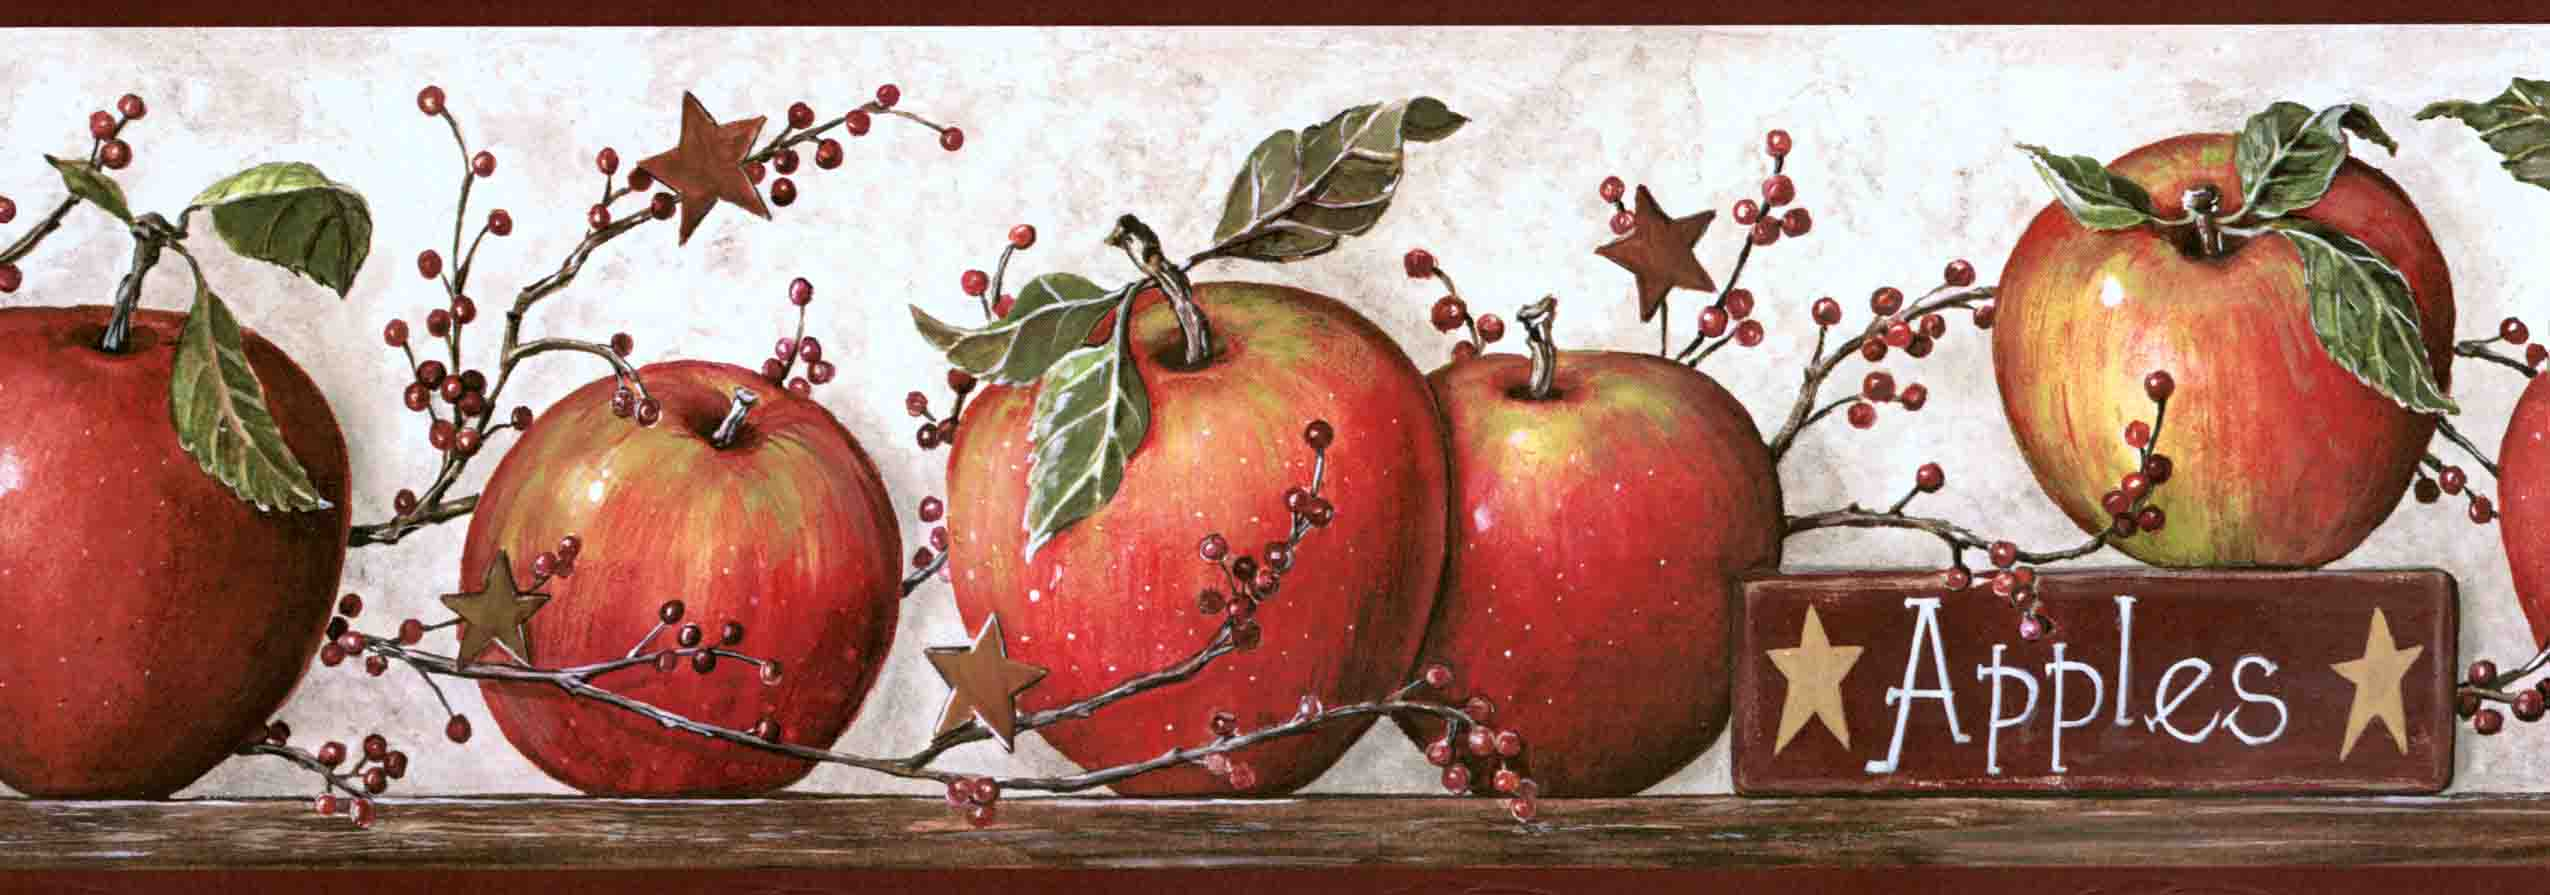 Apple Wallpaper Border Kitchen